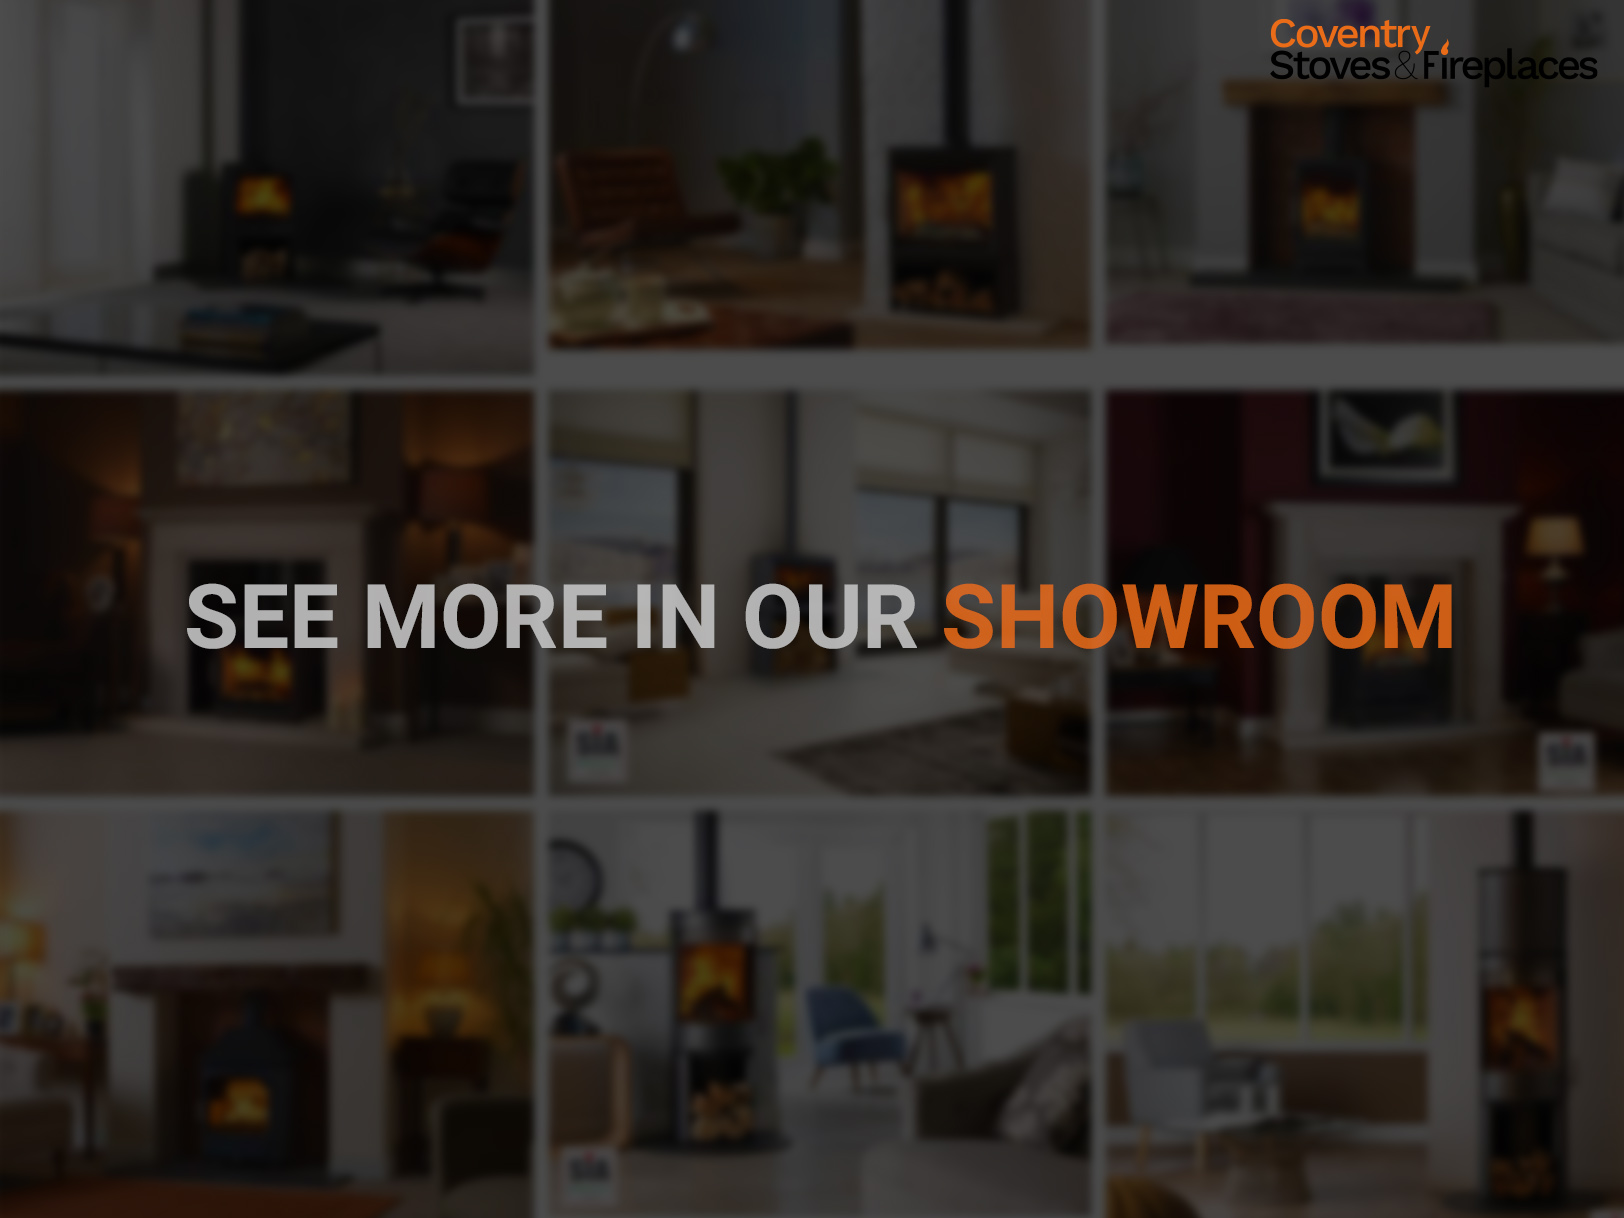 See More Log Burners, Stoves, Gas Fires, Gas Stoves, Gas Fireplaces and Electric Fires in our Showroom